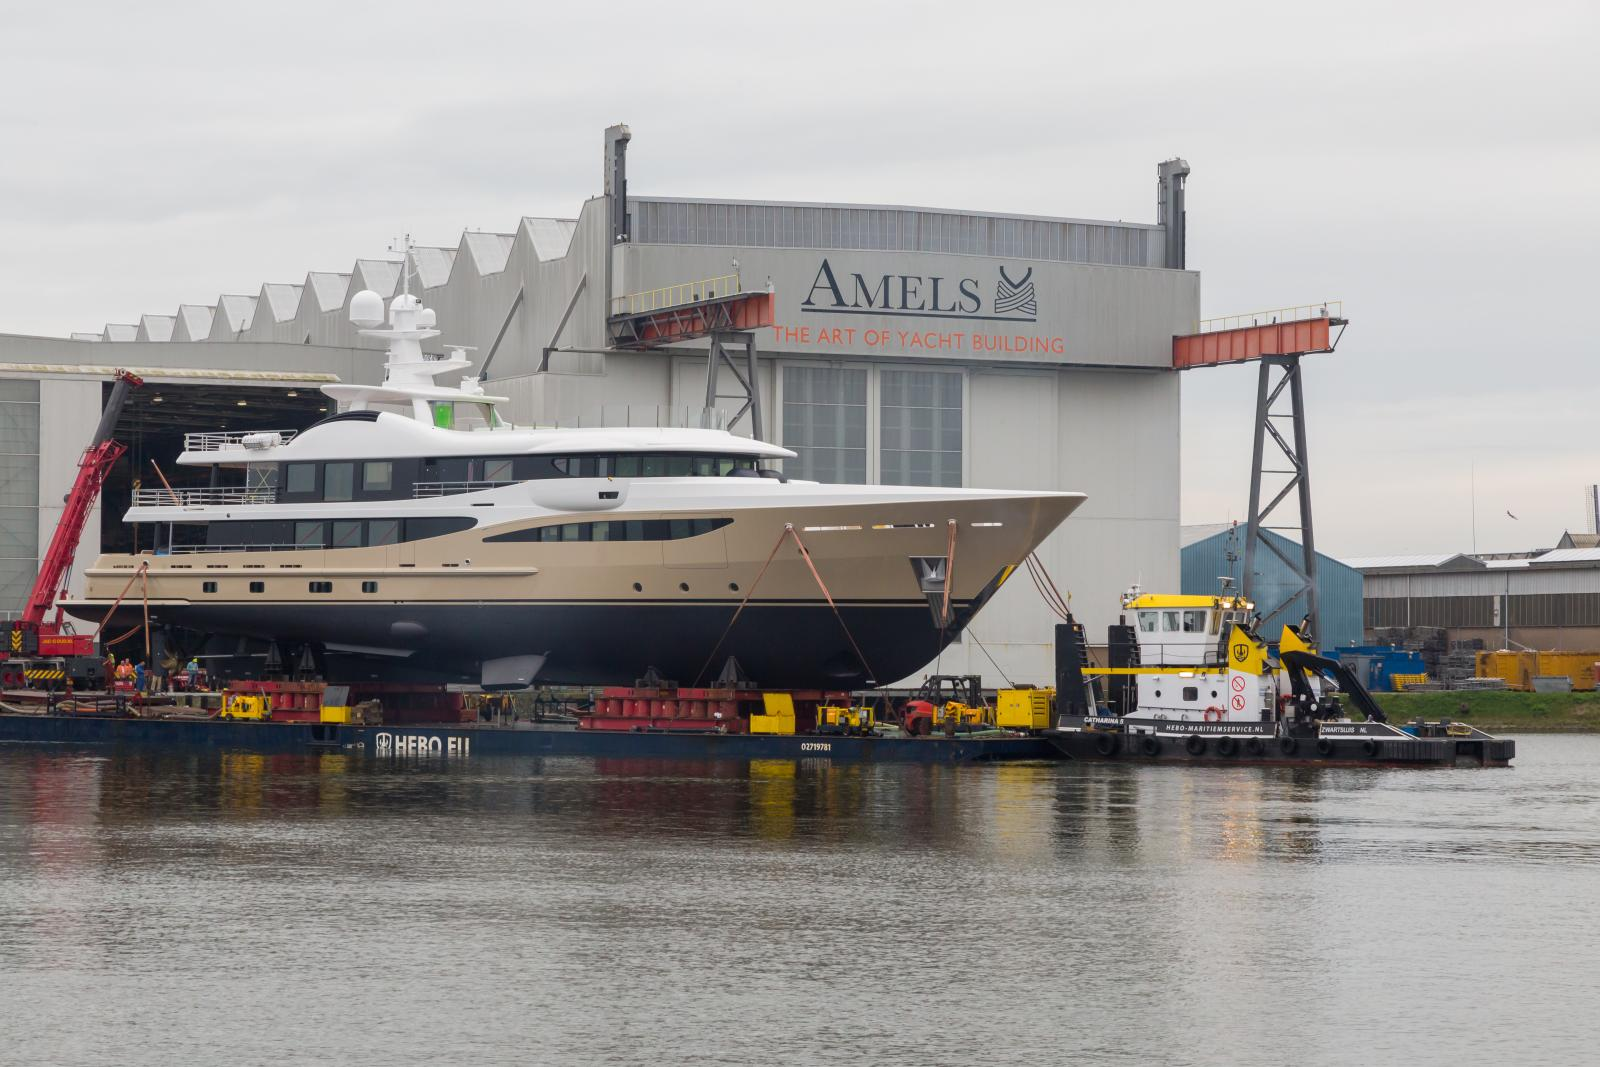 AMELS has launched the brand new AMELS 180 named LILI